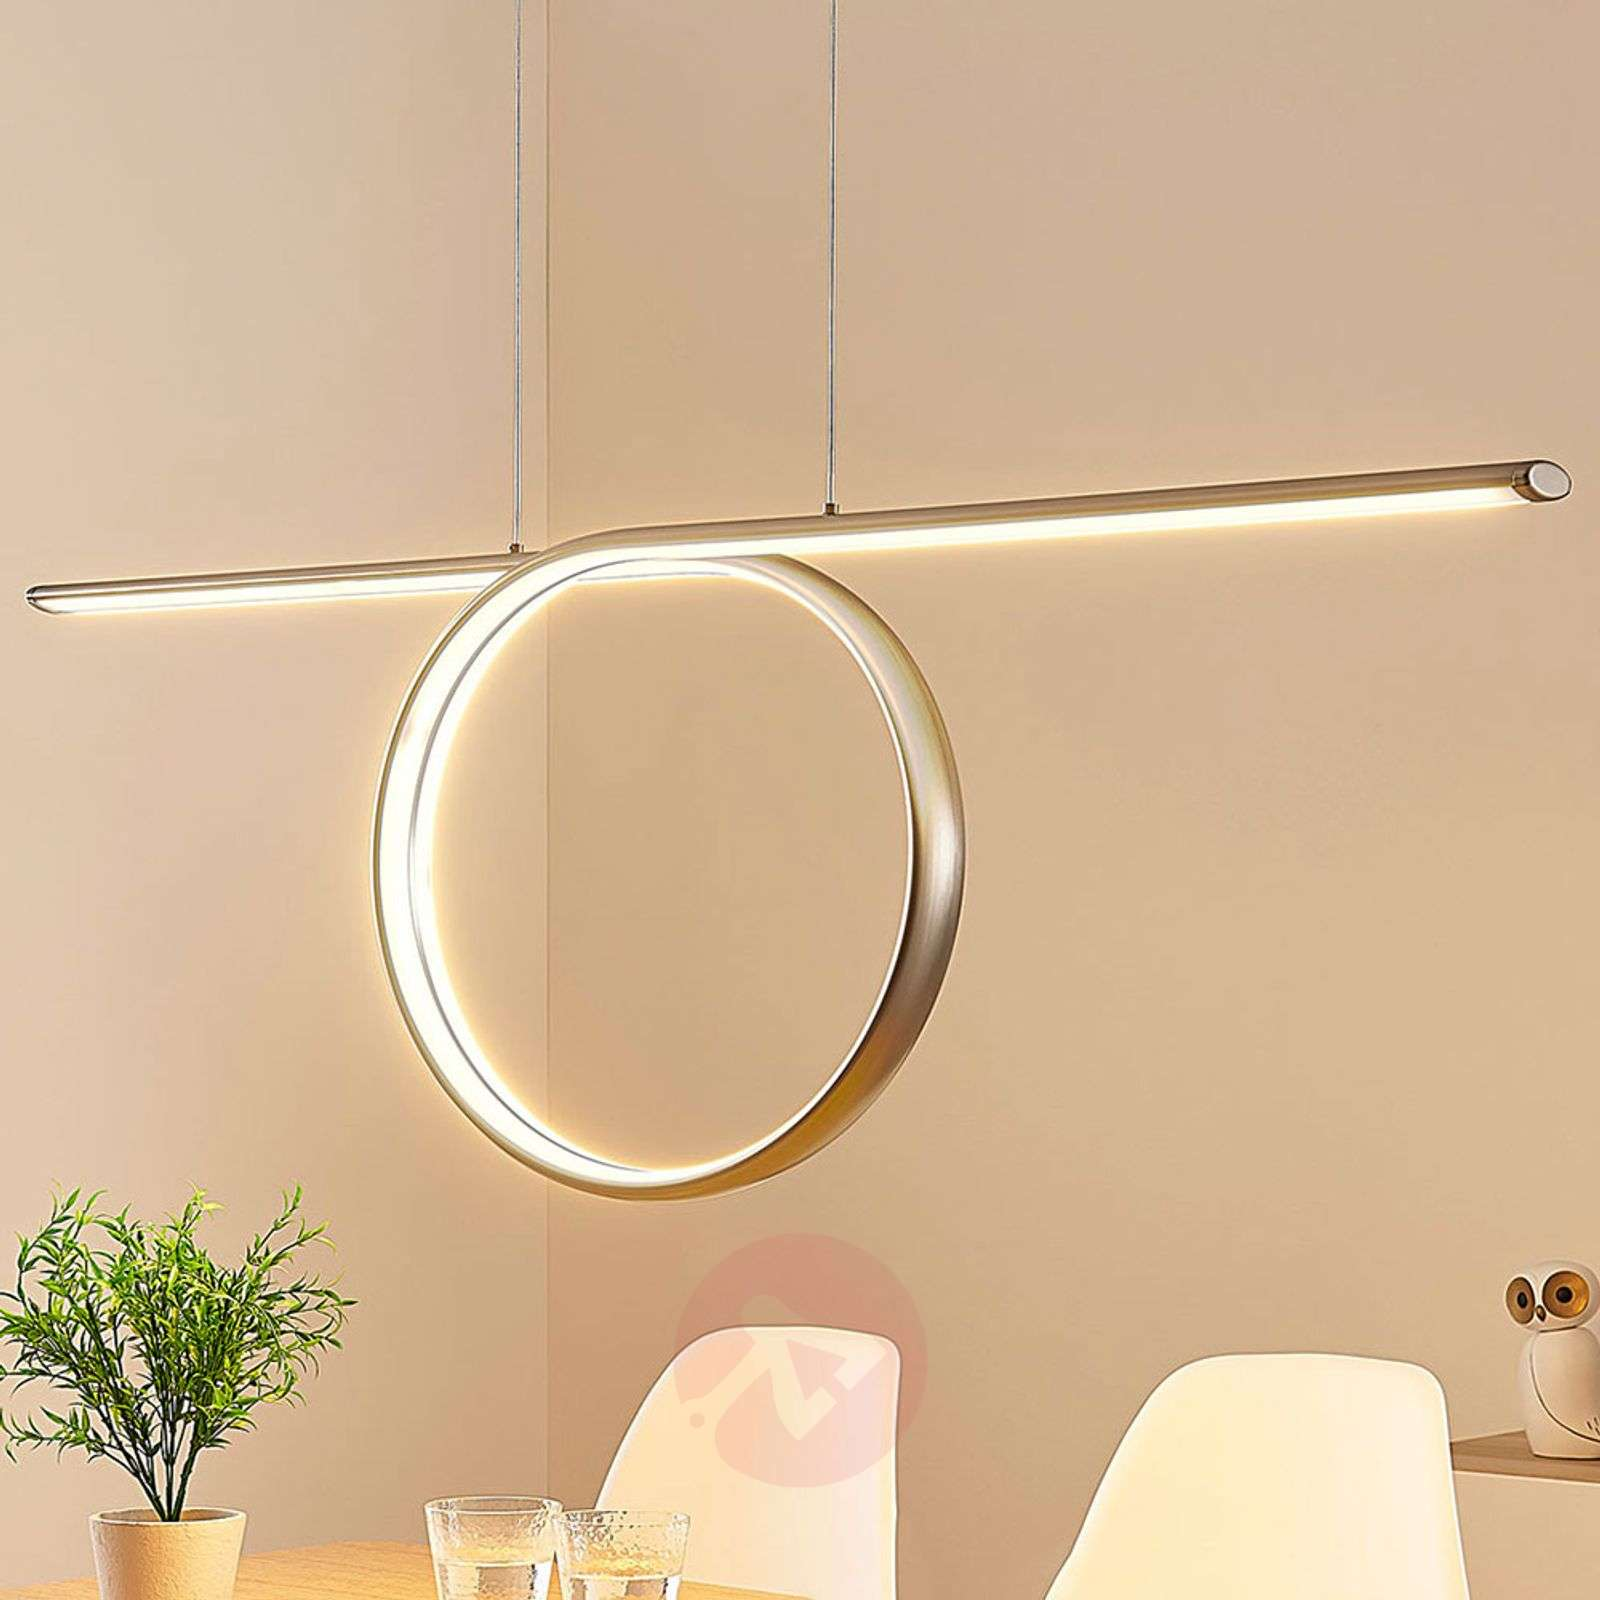 Tani LED hanglamp in lusvorm-9621757-02